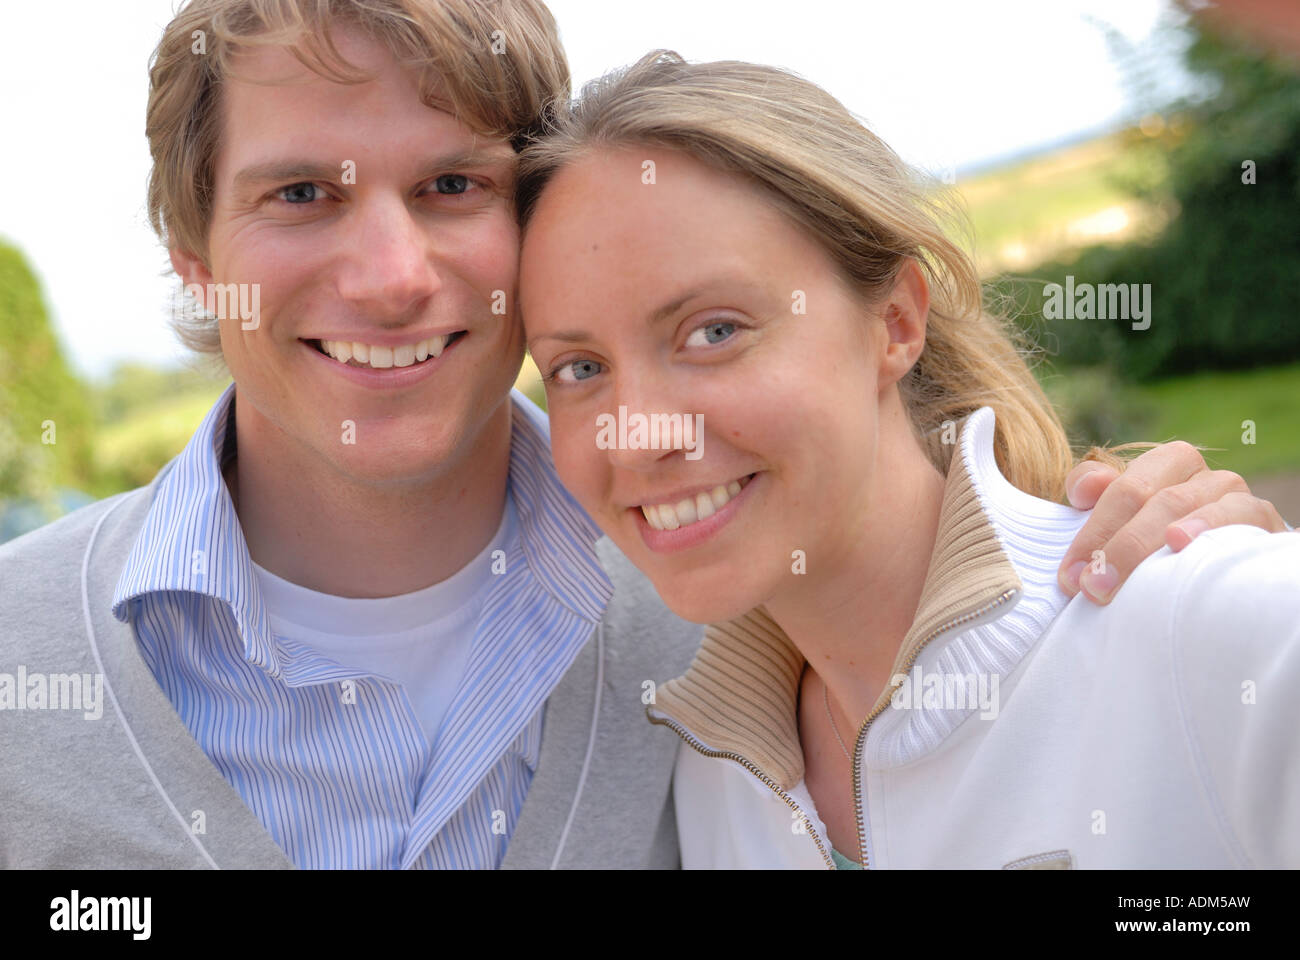 Young couple taking self portrait photograph - Stock Image